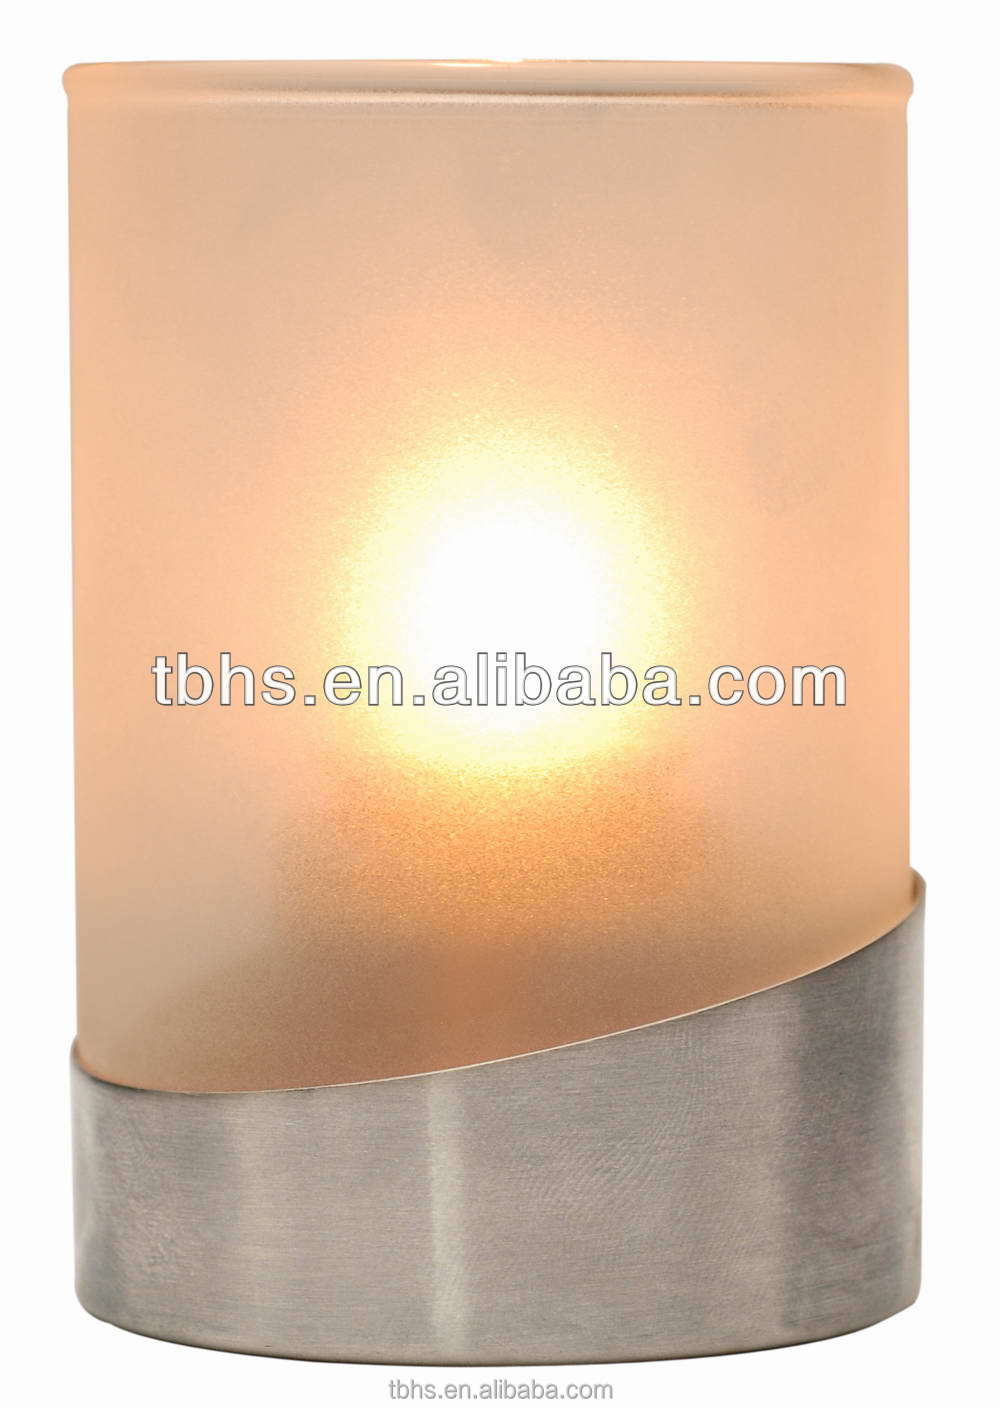 Modern design pila table top paraffin oilmineral oil candle lamp modern design pila table top paraffin oilmineral oil candle lamp buy table oil lamphotel bedside table lampsmodern oil lamps product on alibaba mozeypictures Image collections